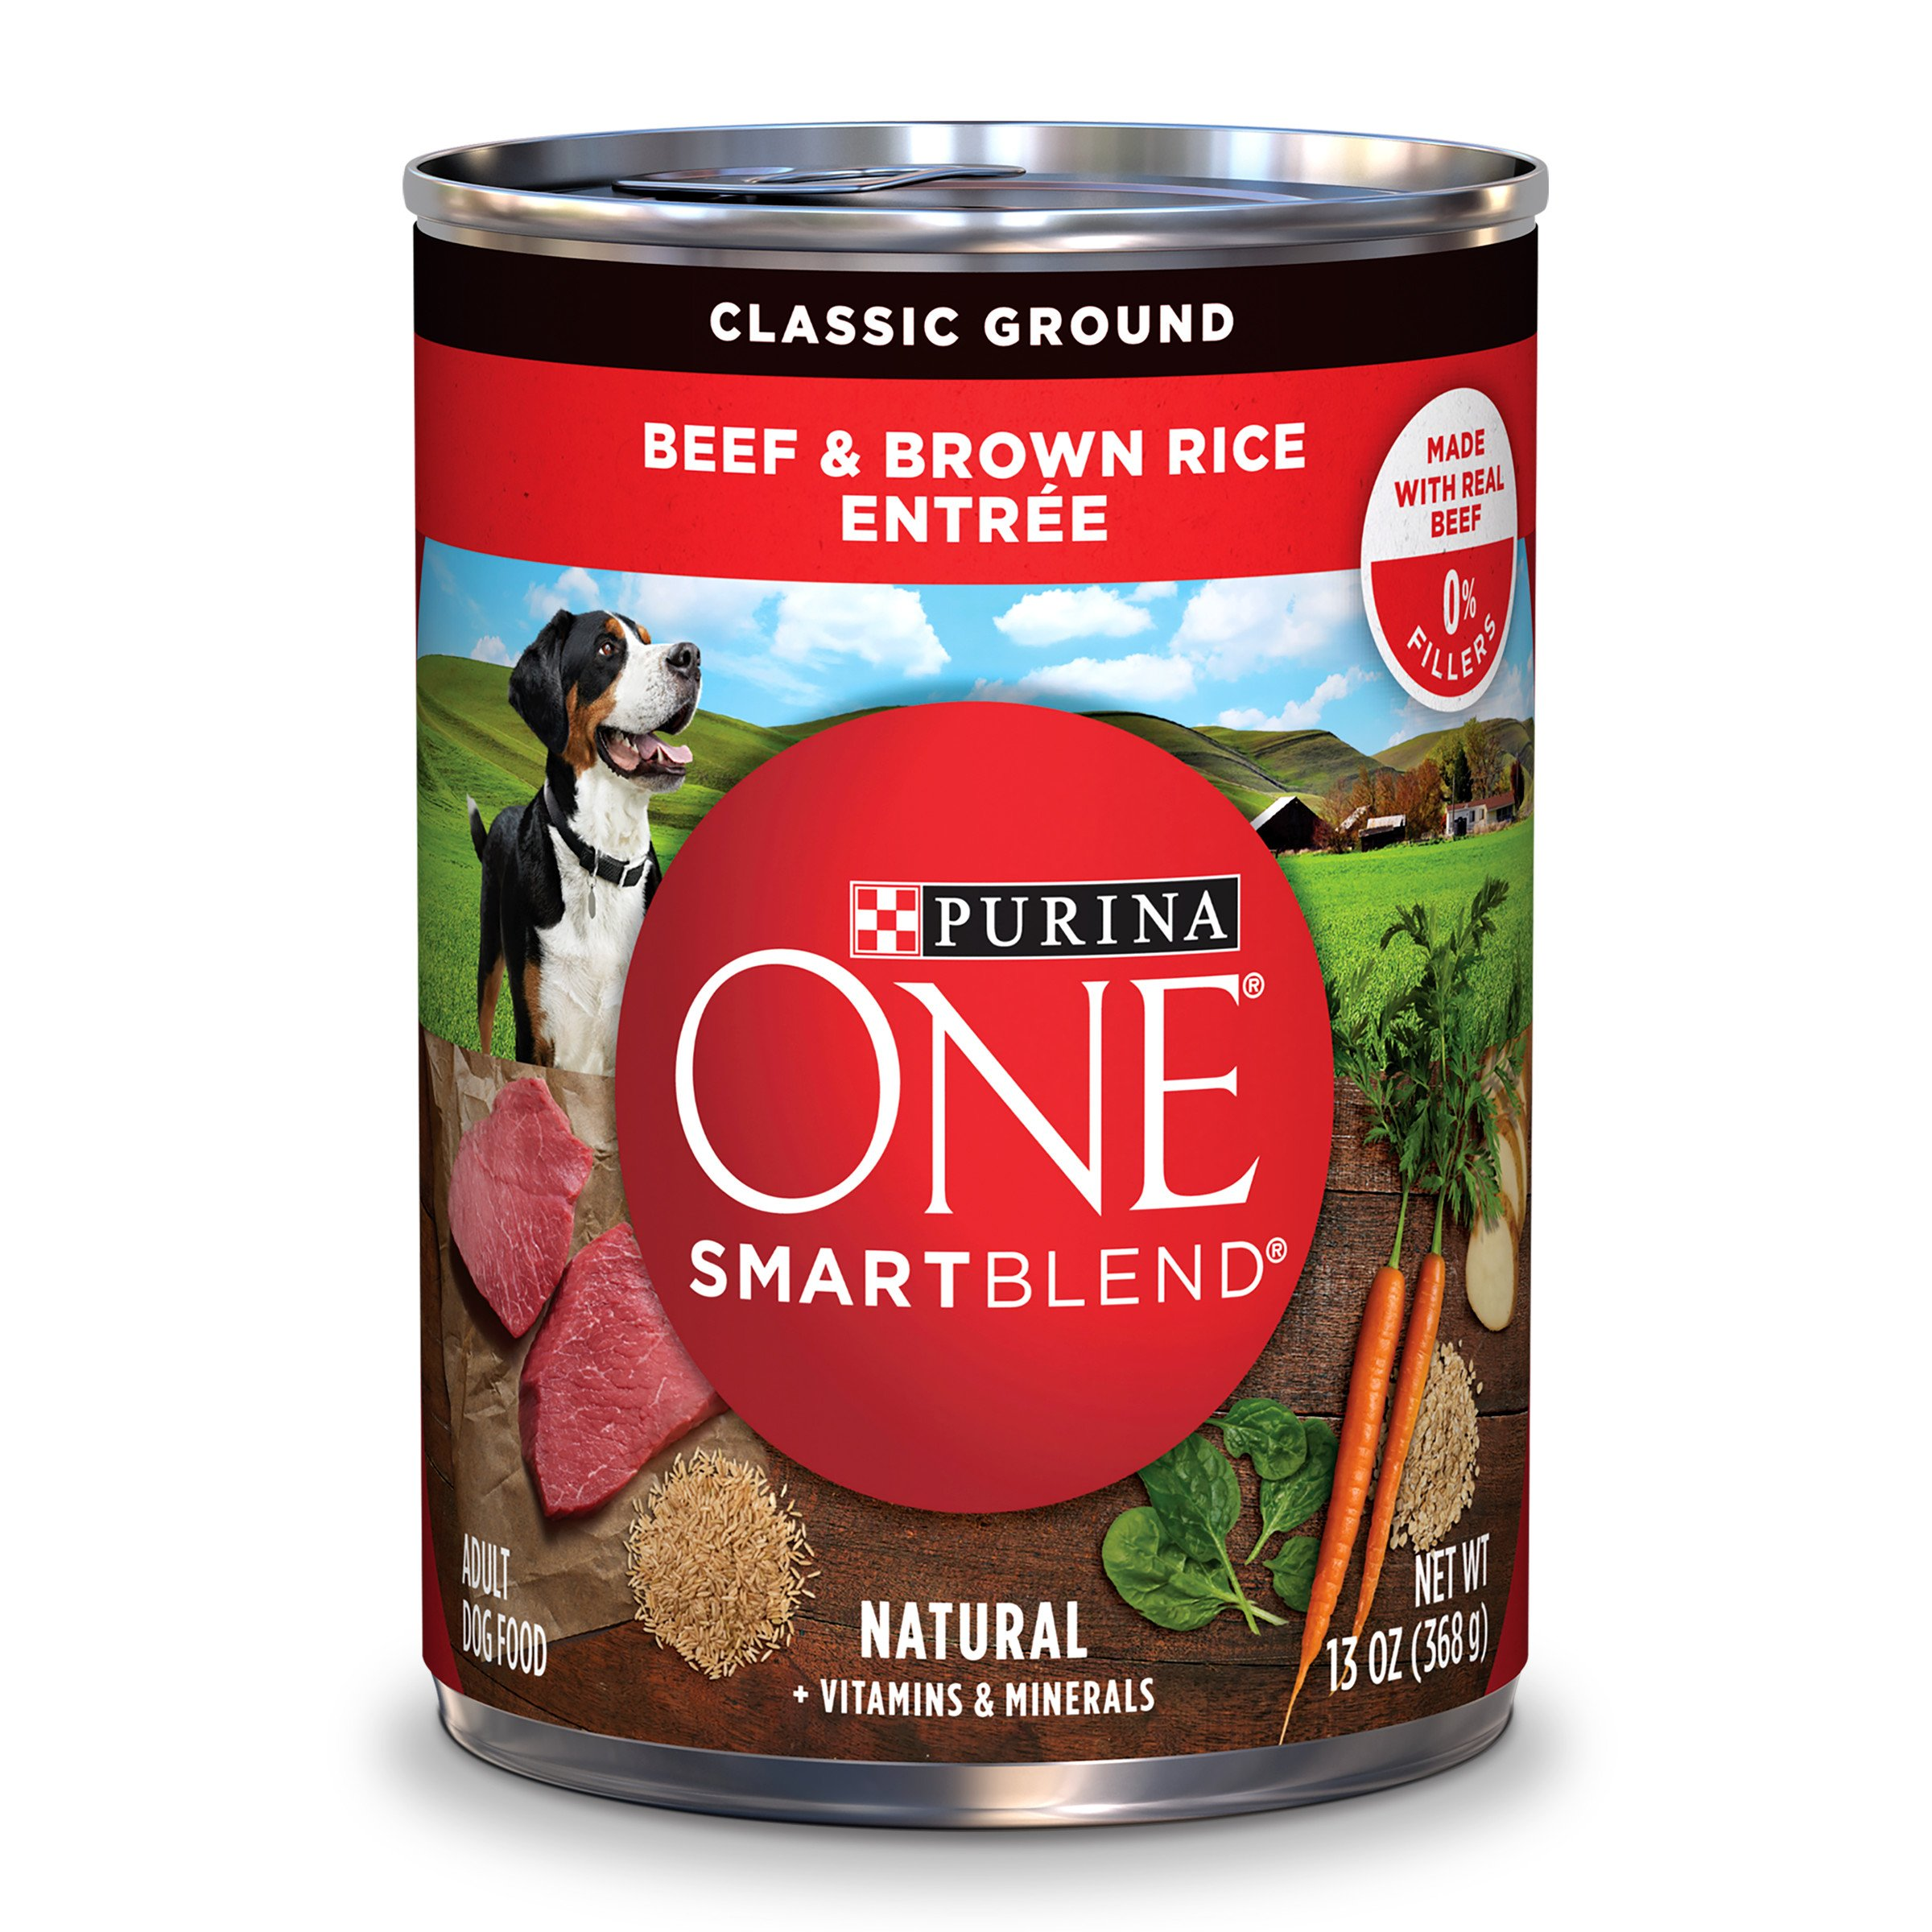 Purina ONE One Wholesome Beef & Brown Rice Entree - 12x13 oz